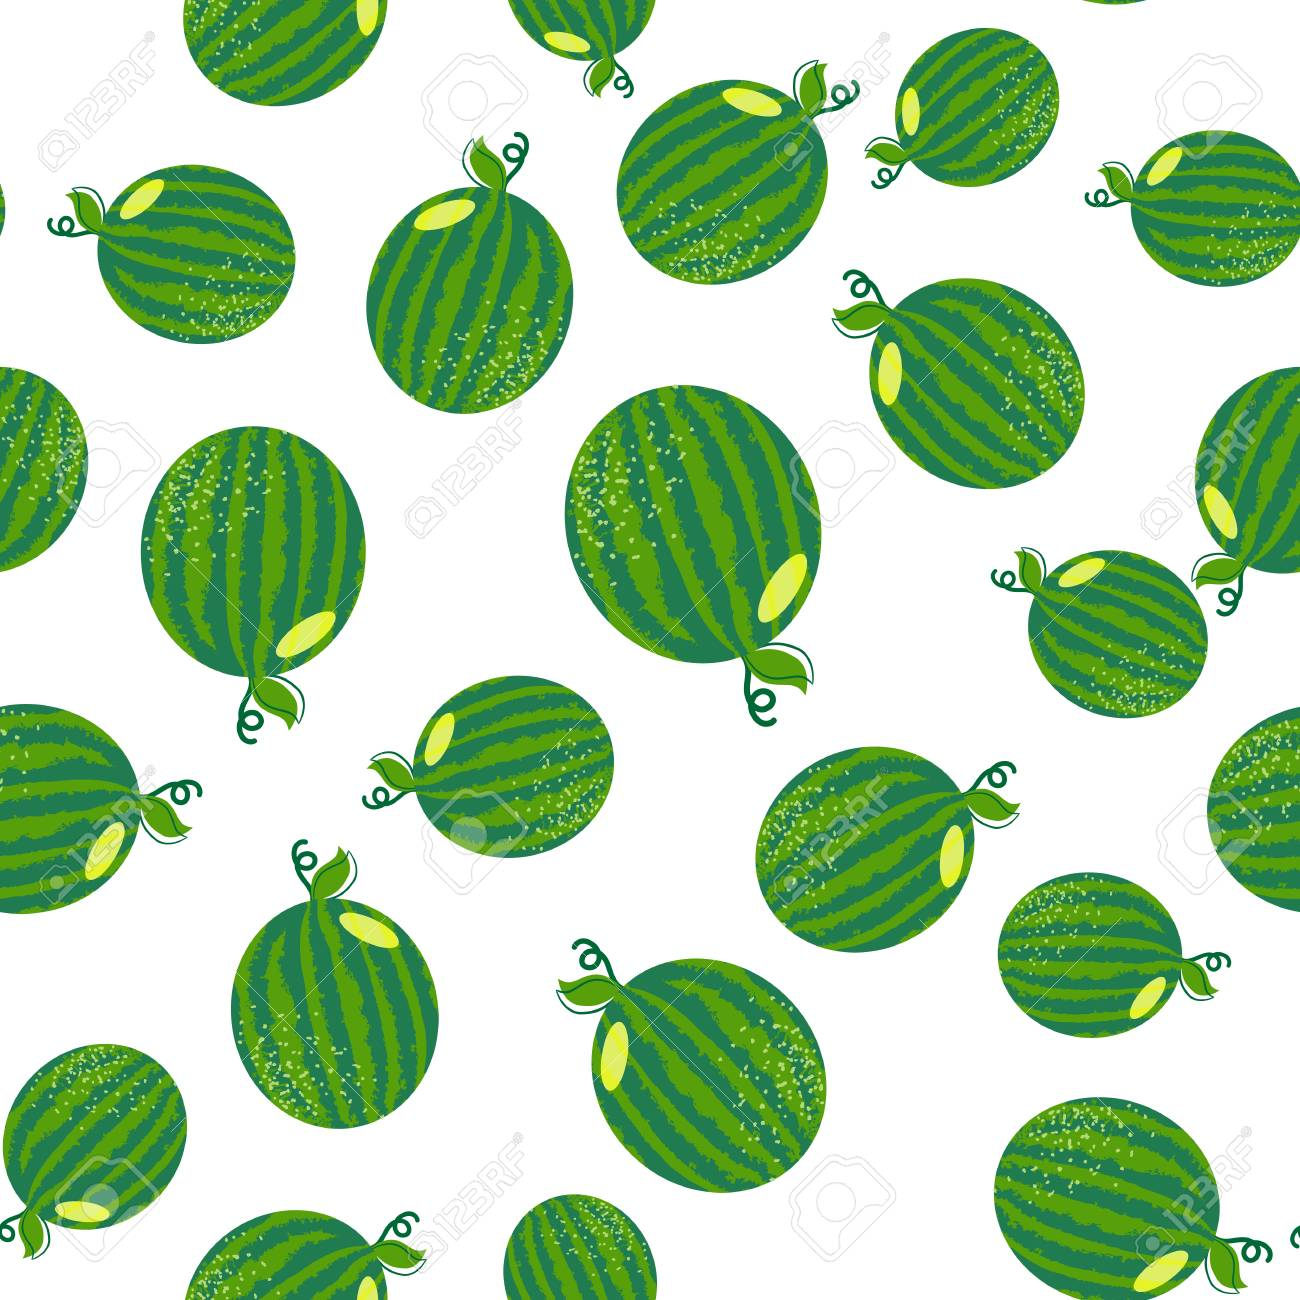 ea2c4b15 Stock Photo - Vector watermelon seamless pattern. Background for summer.  Food vector texture. Green watermelon. Summer wallpaper. Fits for t-shirt  print ...